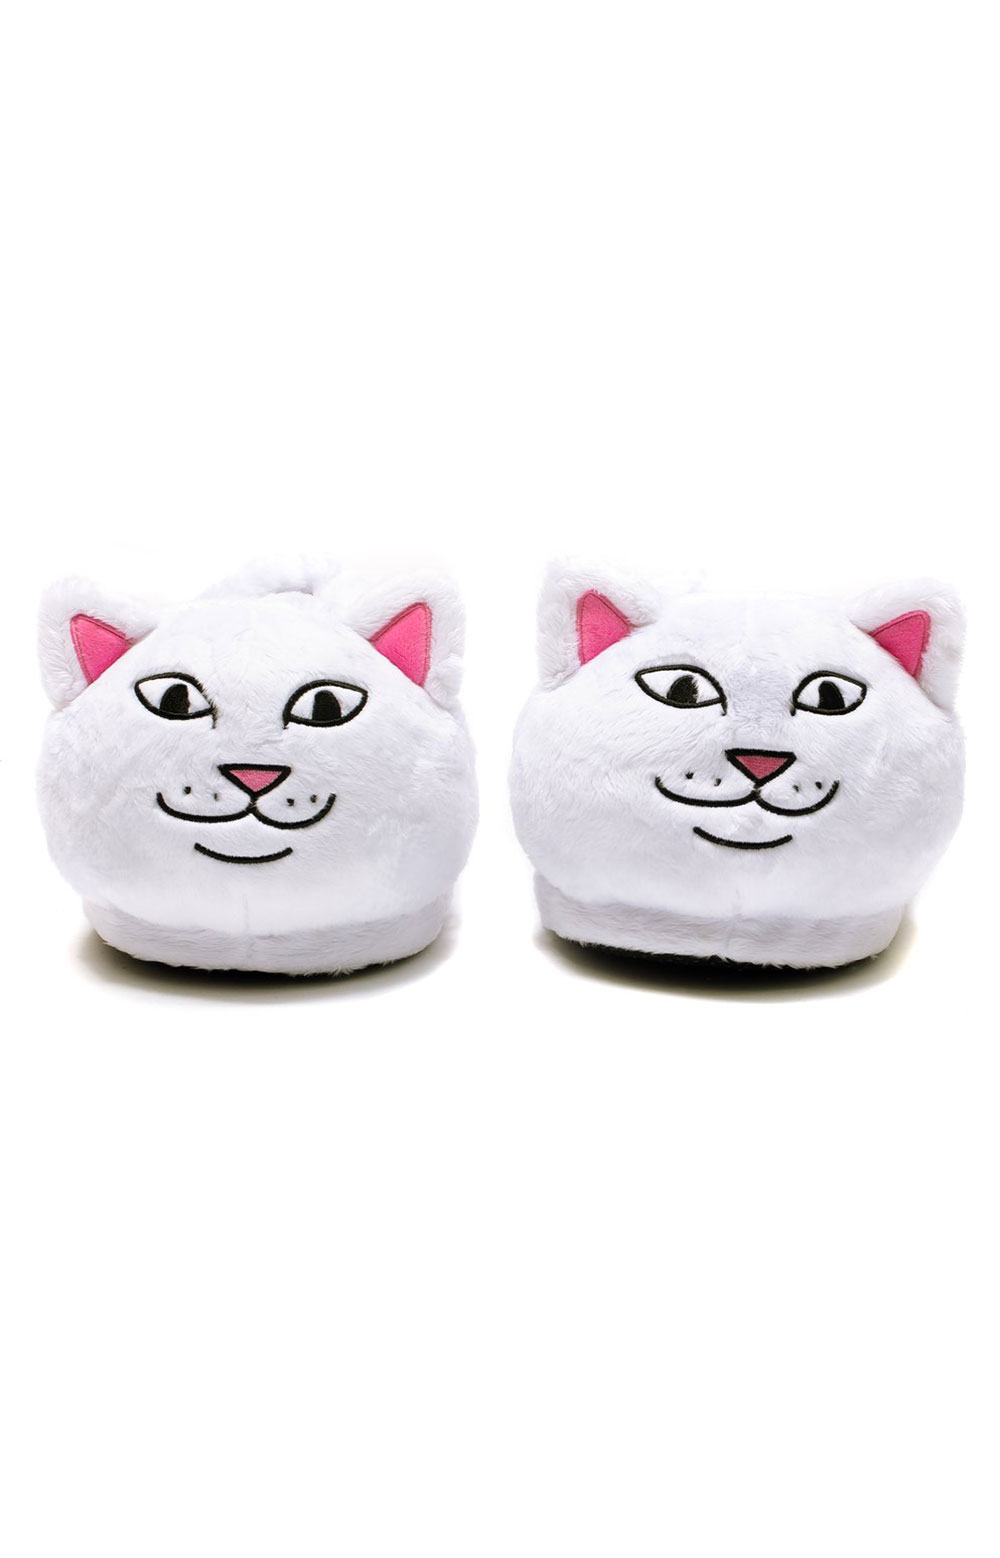 Lord Nermal Slippers - White  2